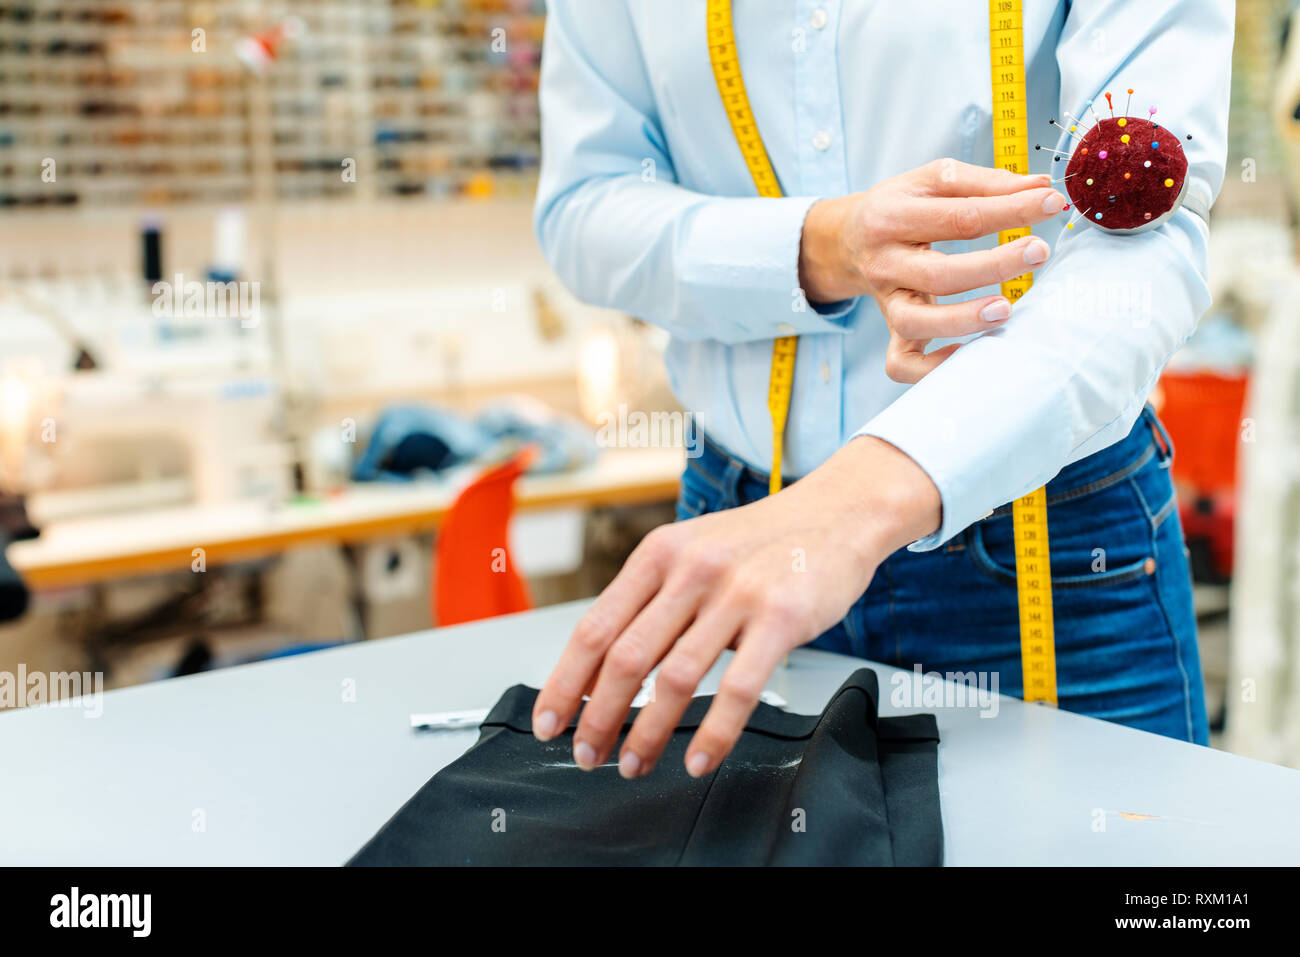 Alterations tailor working on some trousers - Stock Image